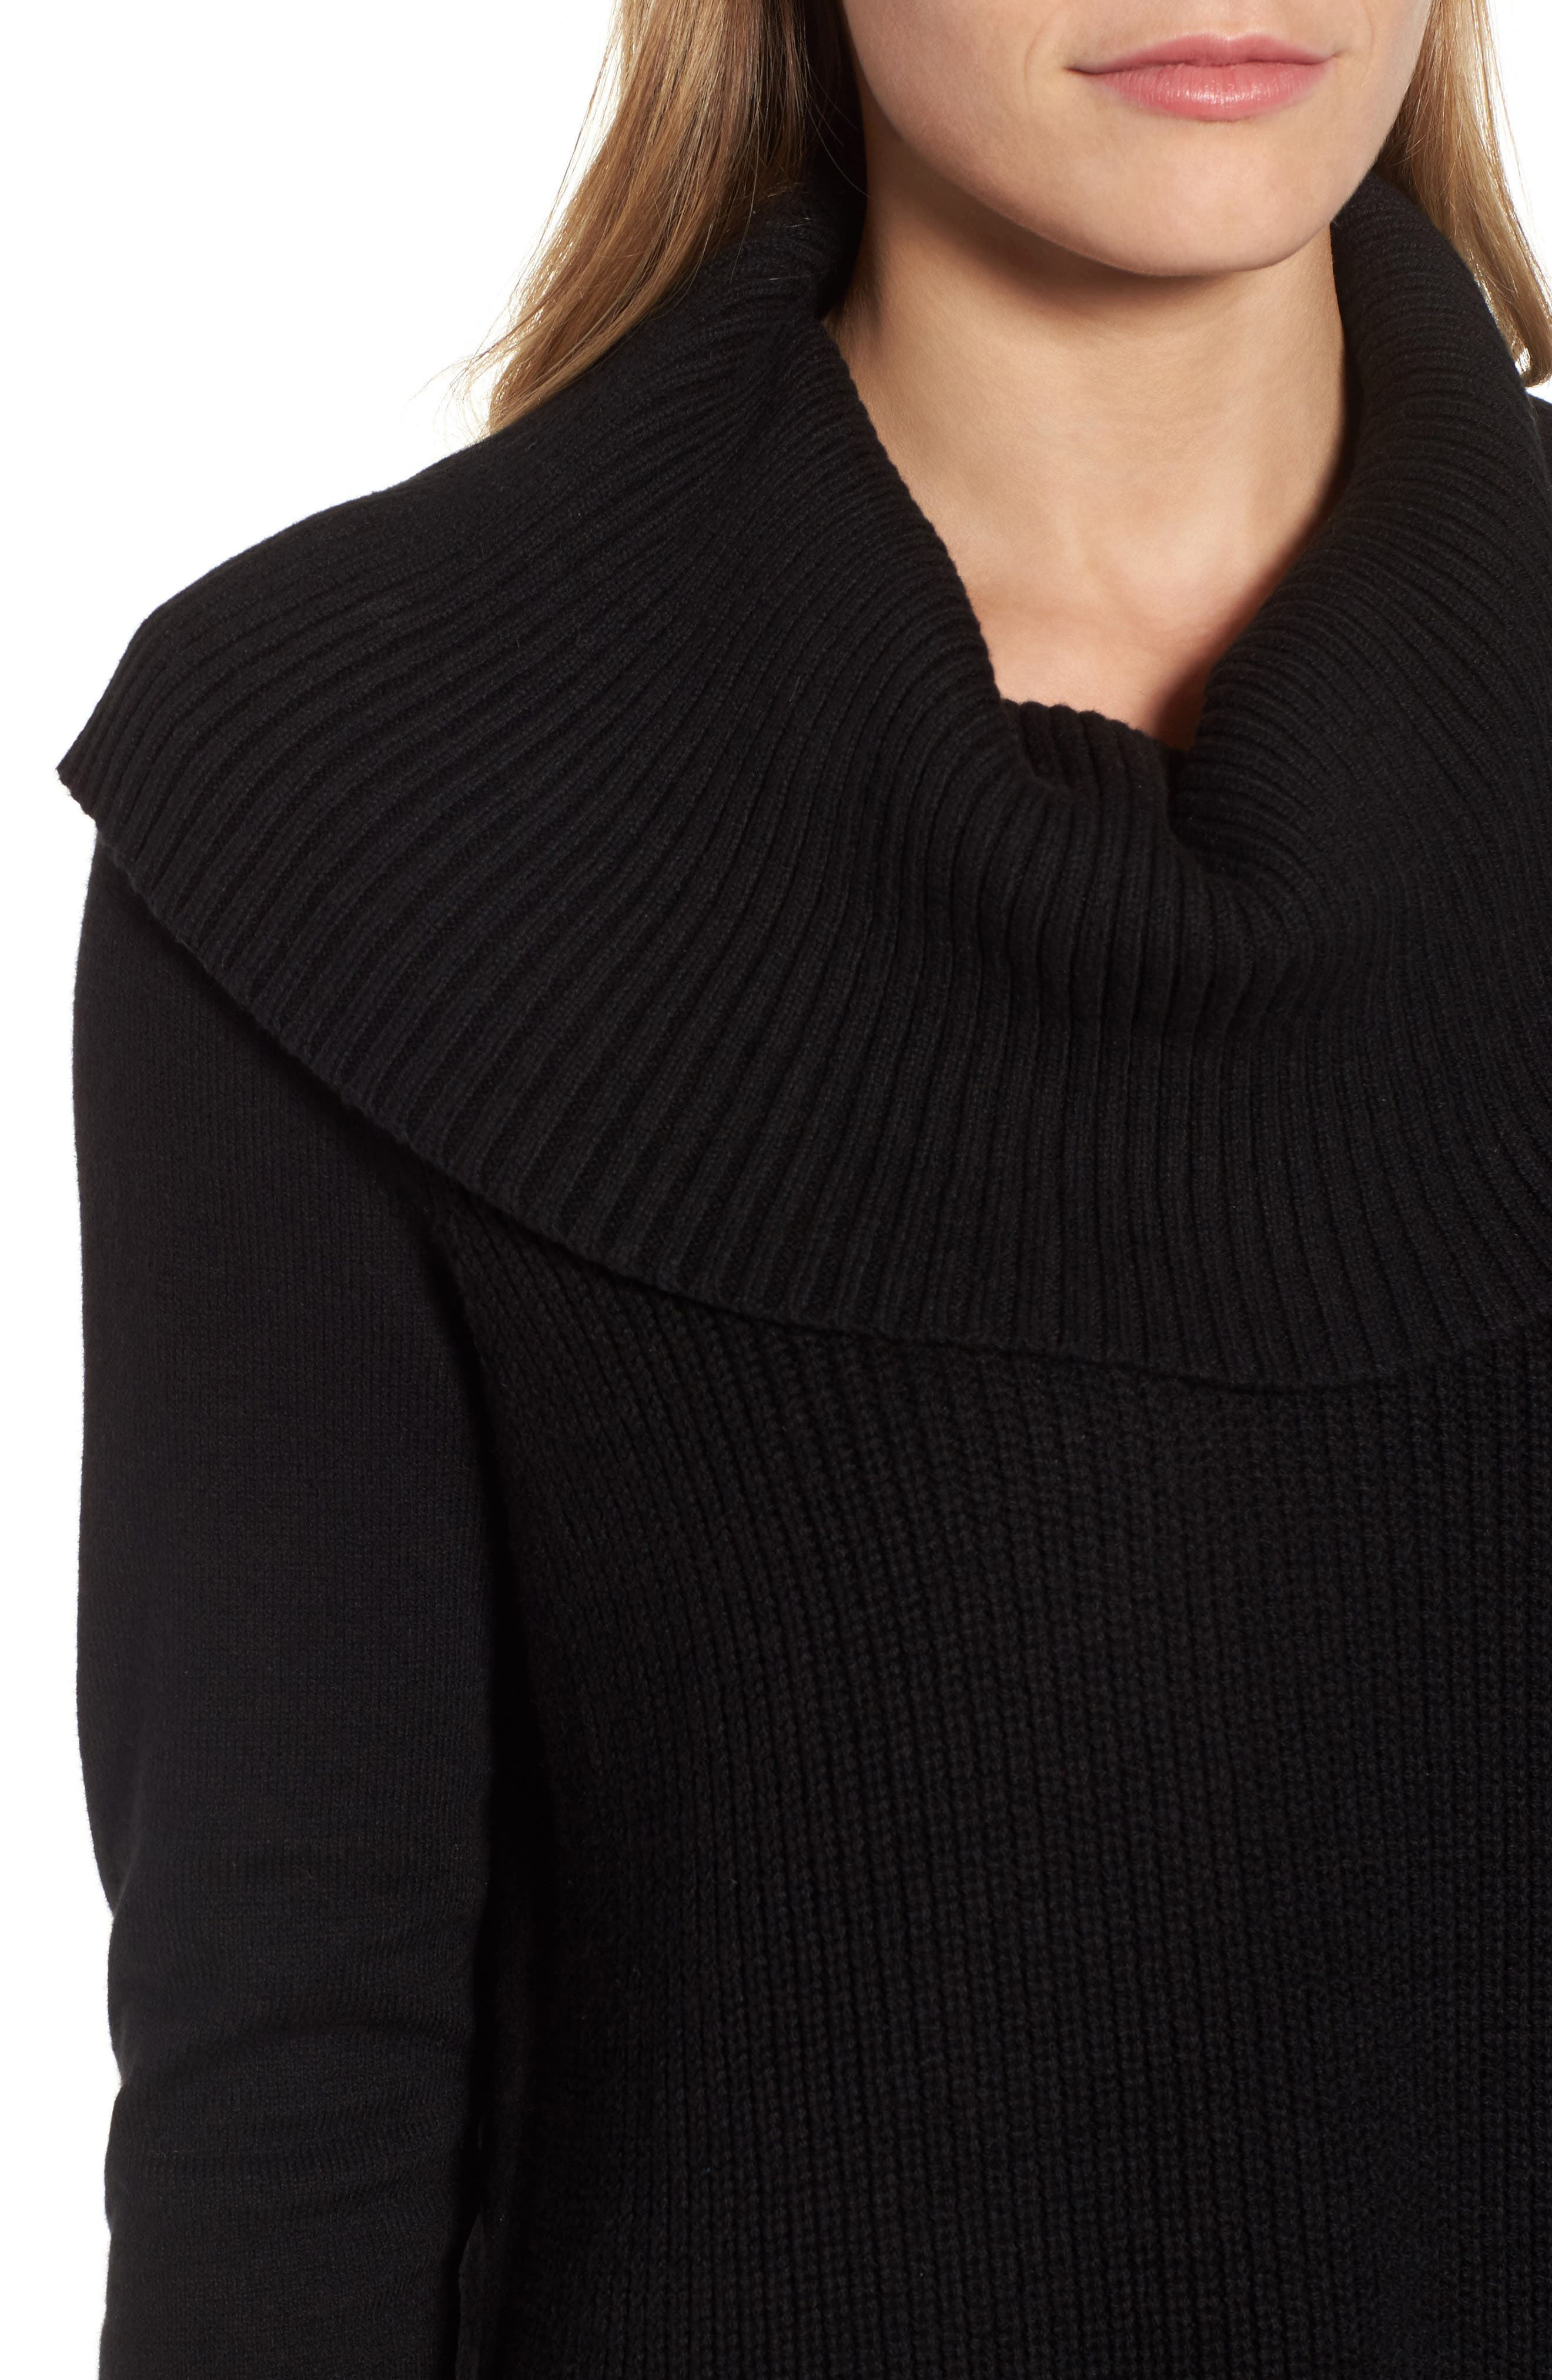 Cowl Neck Sweater,                             Alternate thumbnail 4, color,                             Black